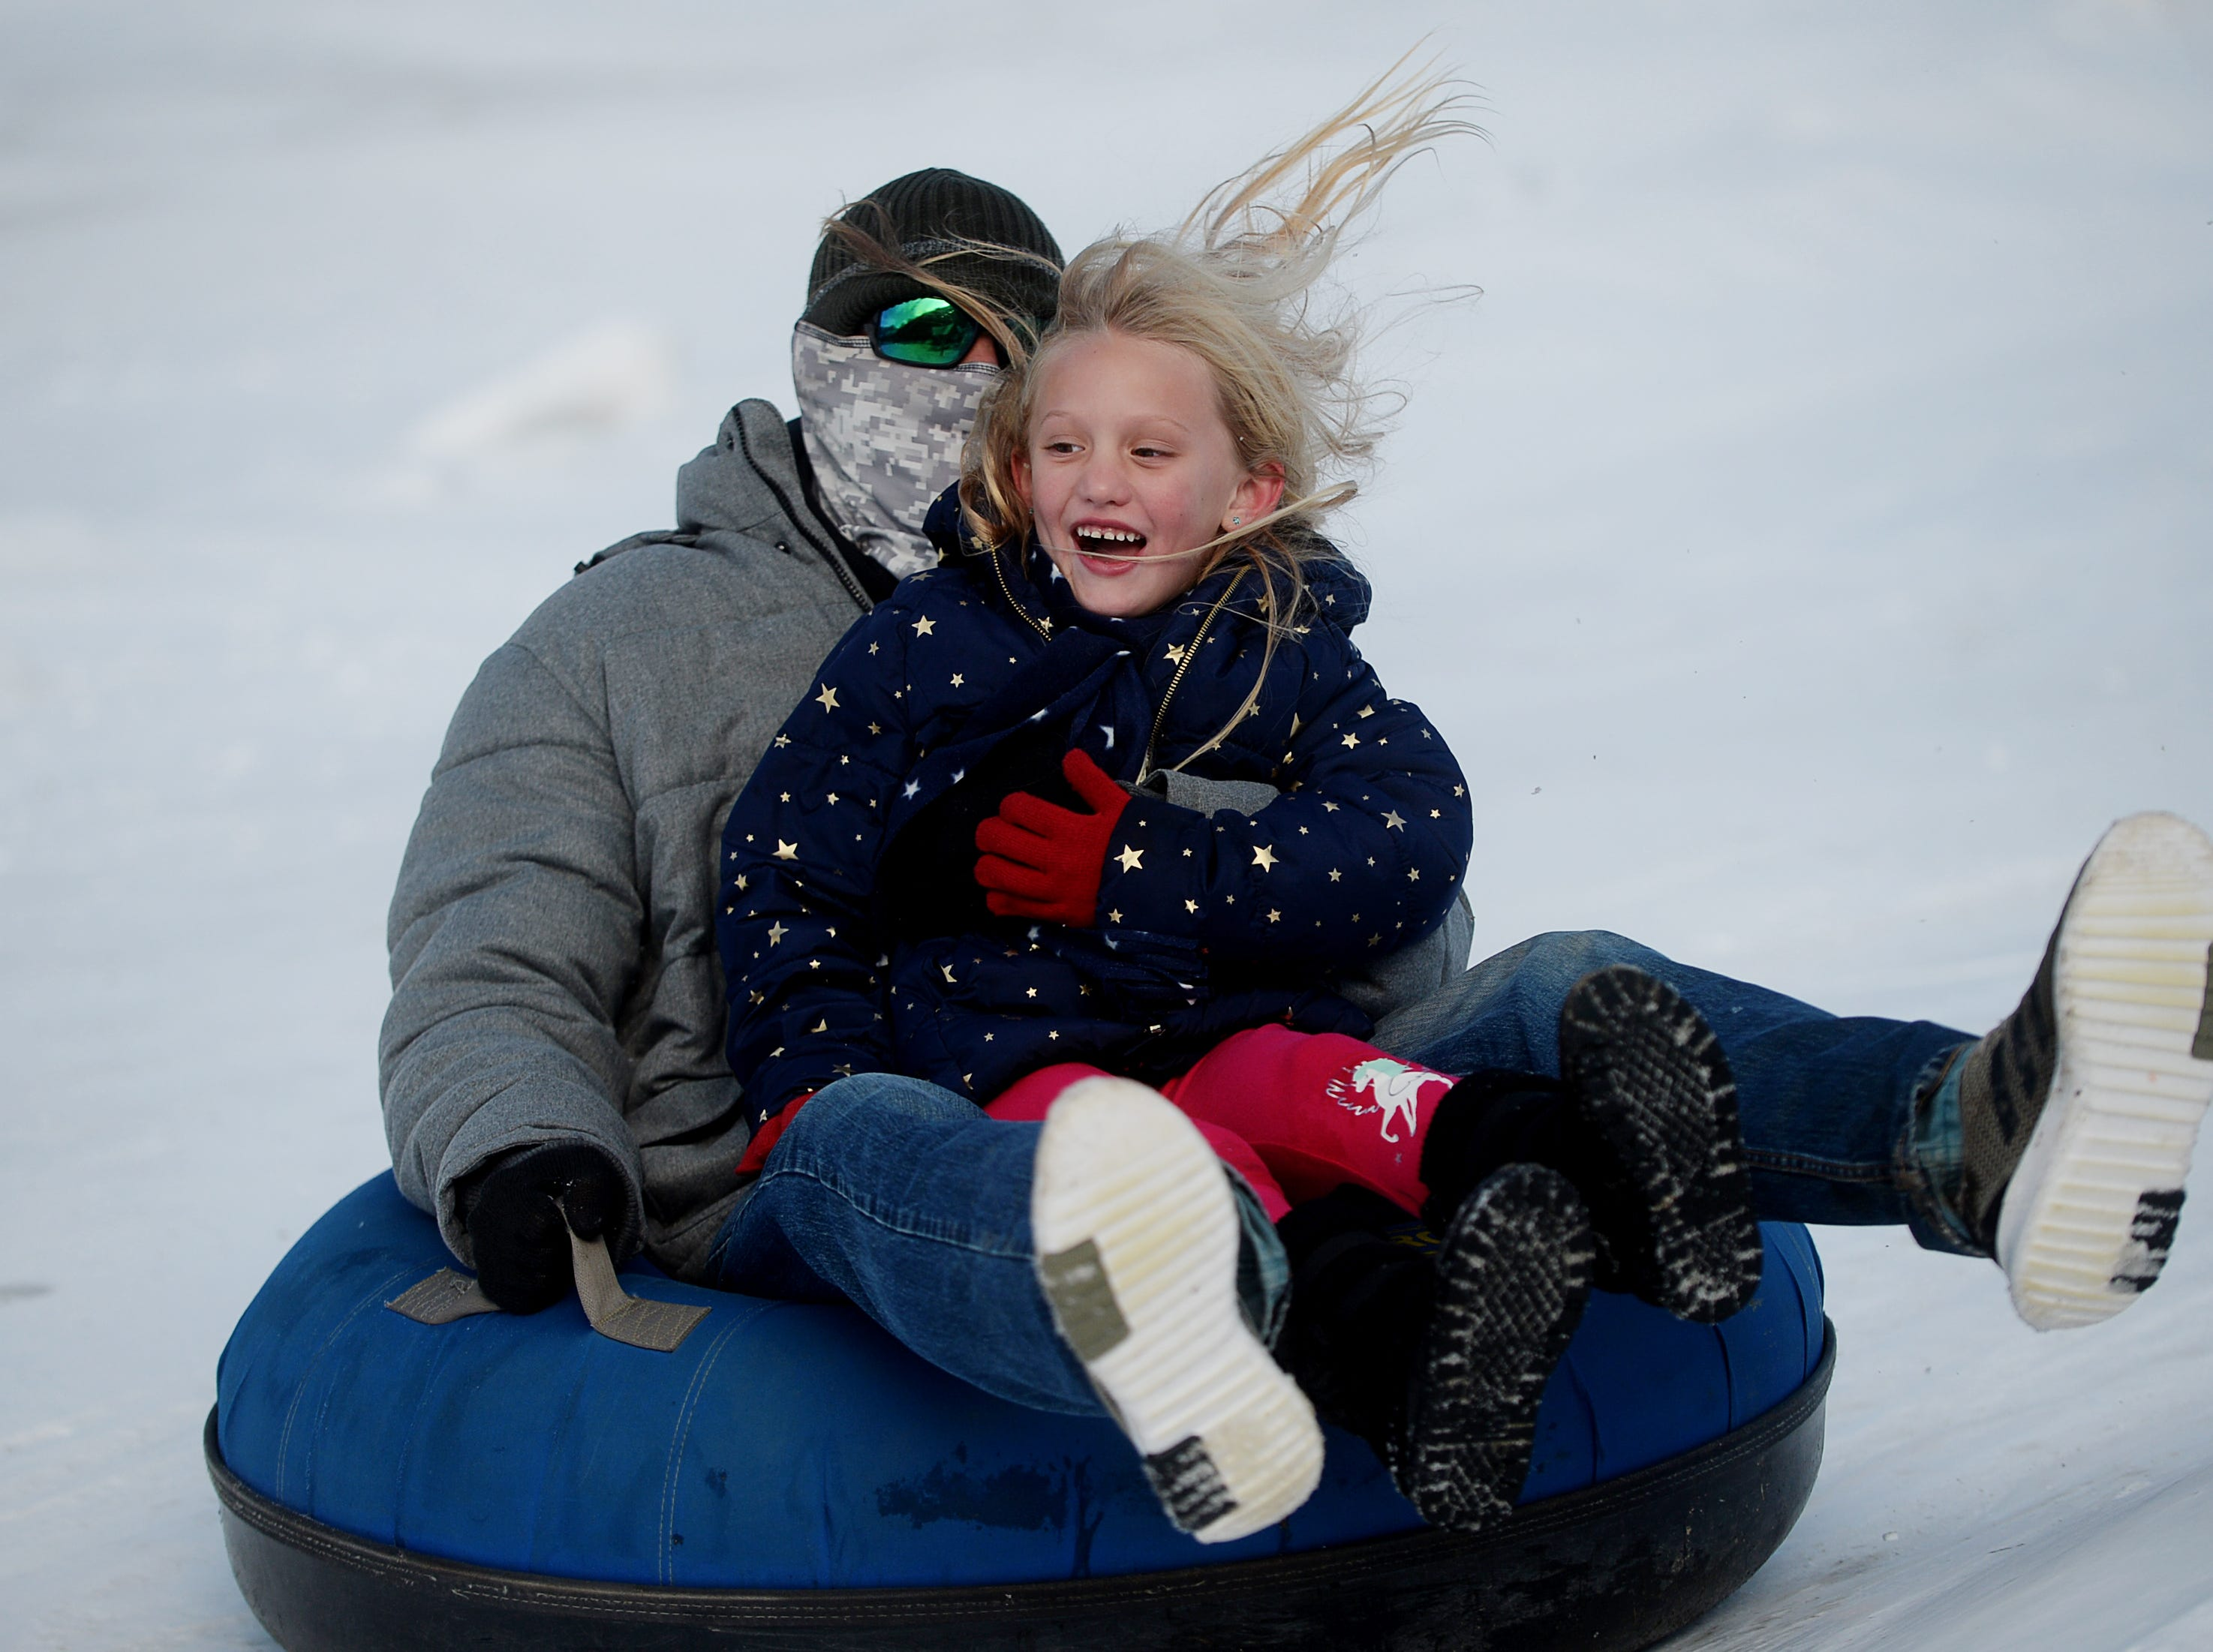 Kinley James slides down the hill at the Zip N Slip Snow Tubing Park in Mars Hill with her father, Gary, on Dec. 22, 2018. It was the first time the 5-year-old, of Sarasota, Florida, had seen snow.